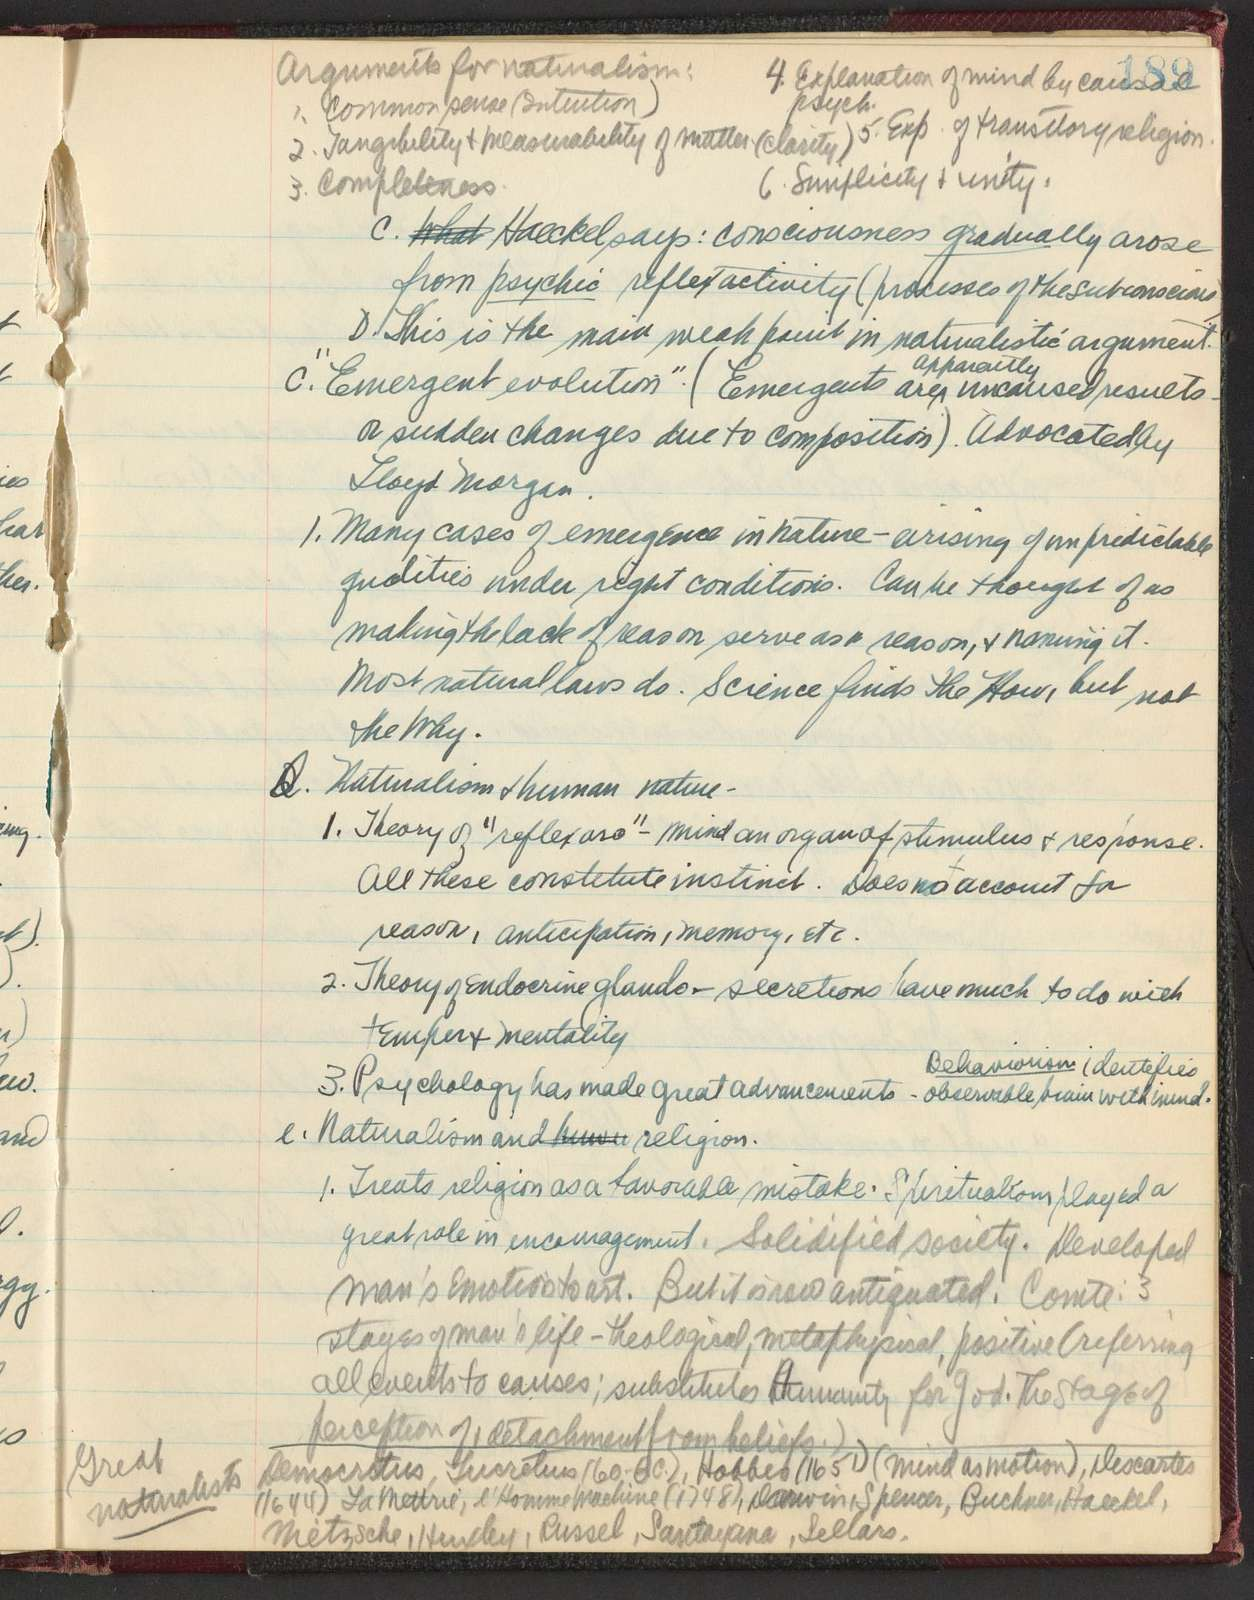 Harvard class notes: English, Philosophy, Music, Comparative Literature, 1938-39